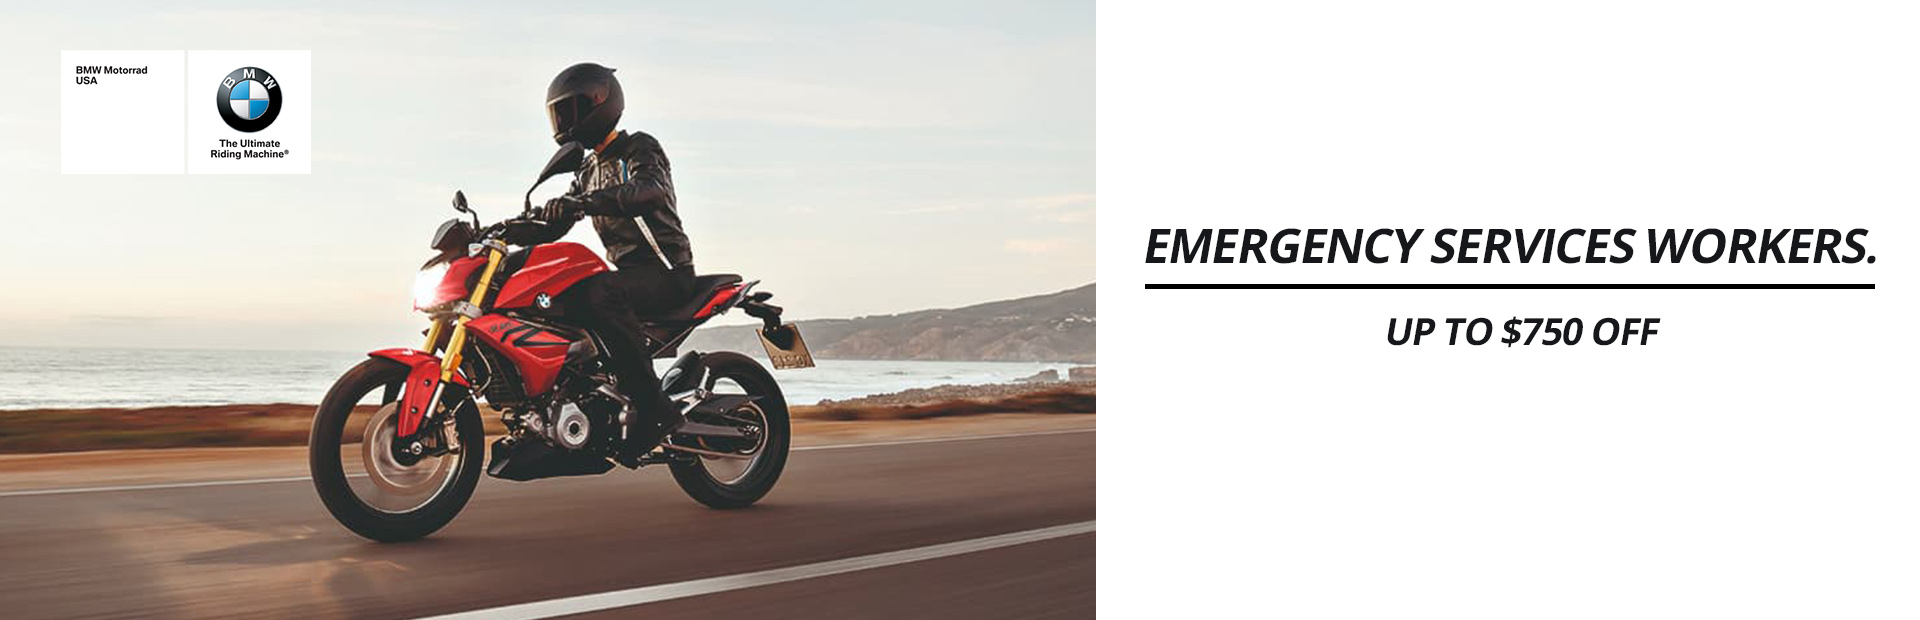 BMW: Emergency Services Workers Up To $750 Off